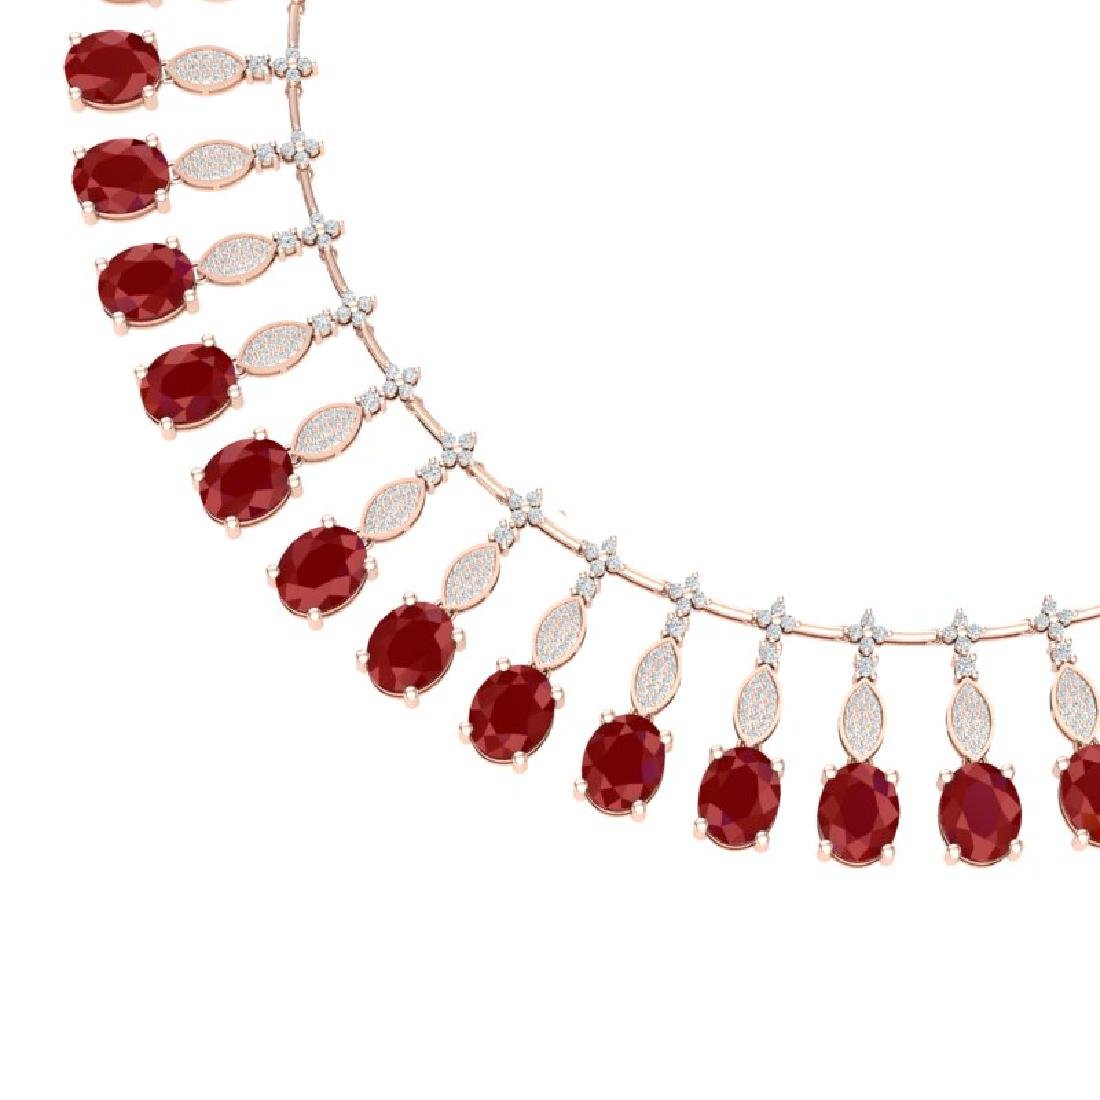 65.62 CTW Royalty Ruby & VS Diamond Necklace 18K Rose